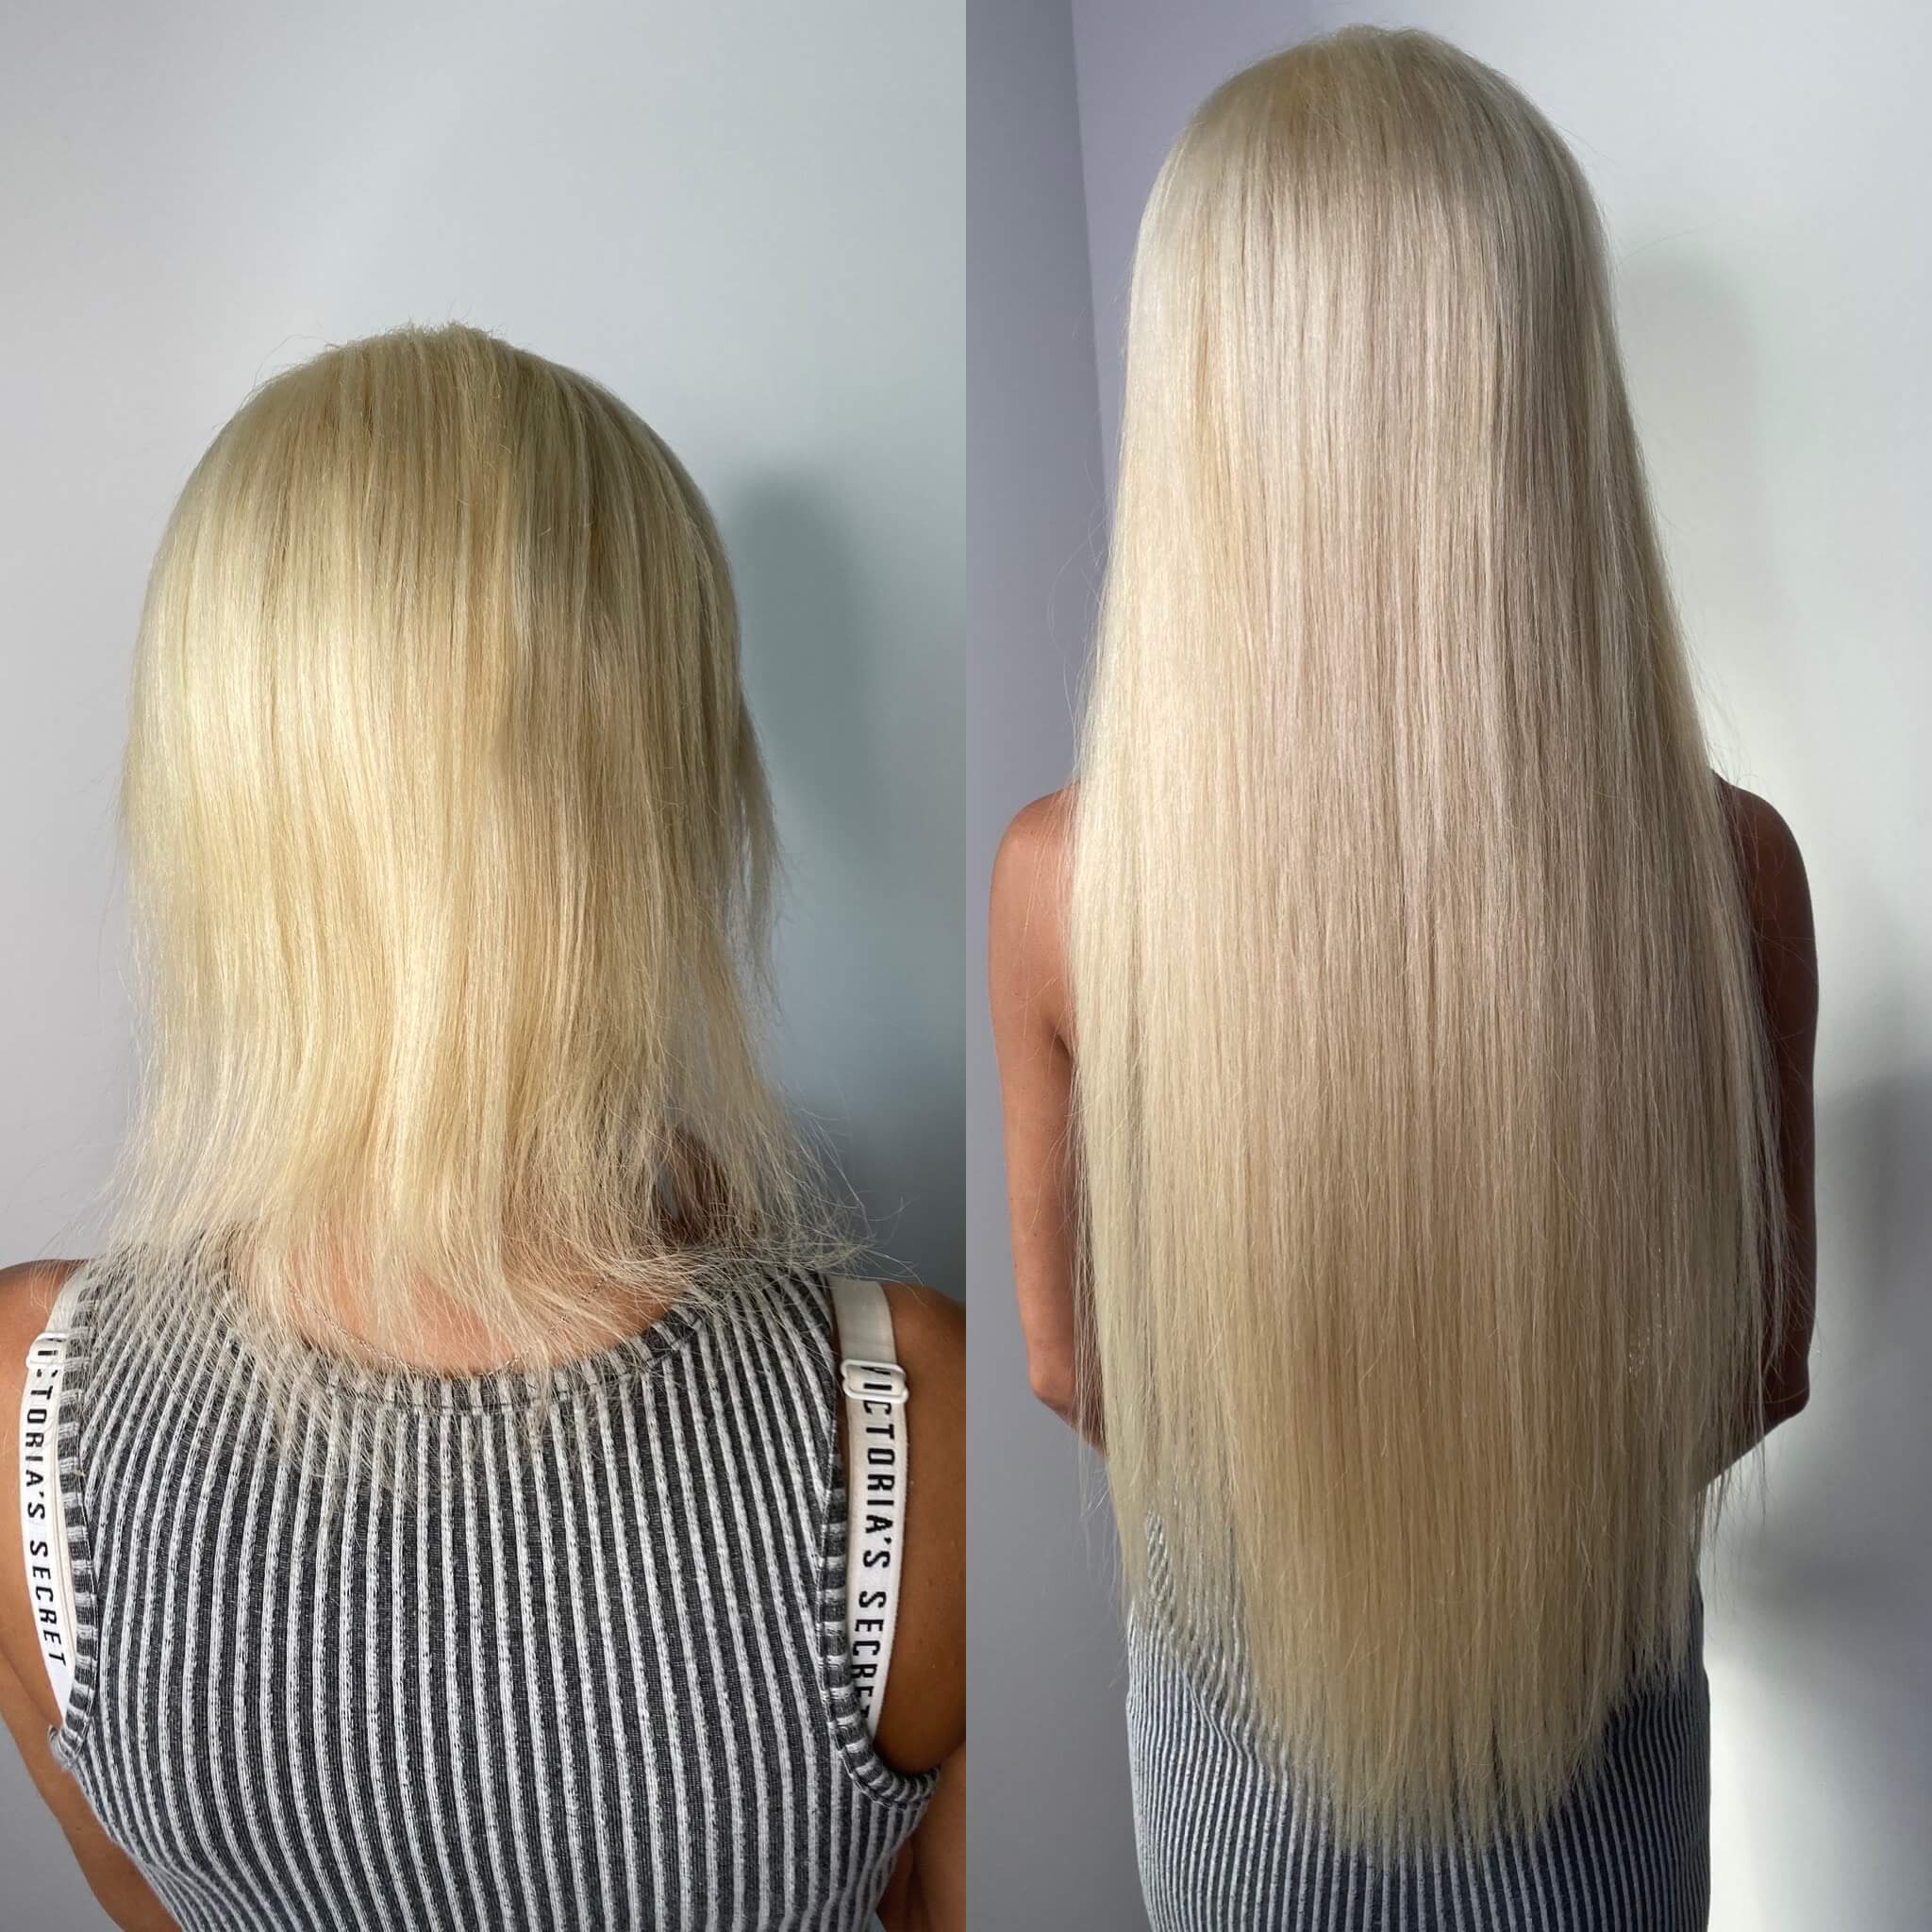 Hot Fusion Hair Extensions Example Before and After - 2